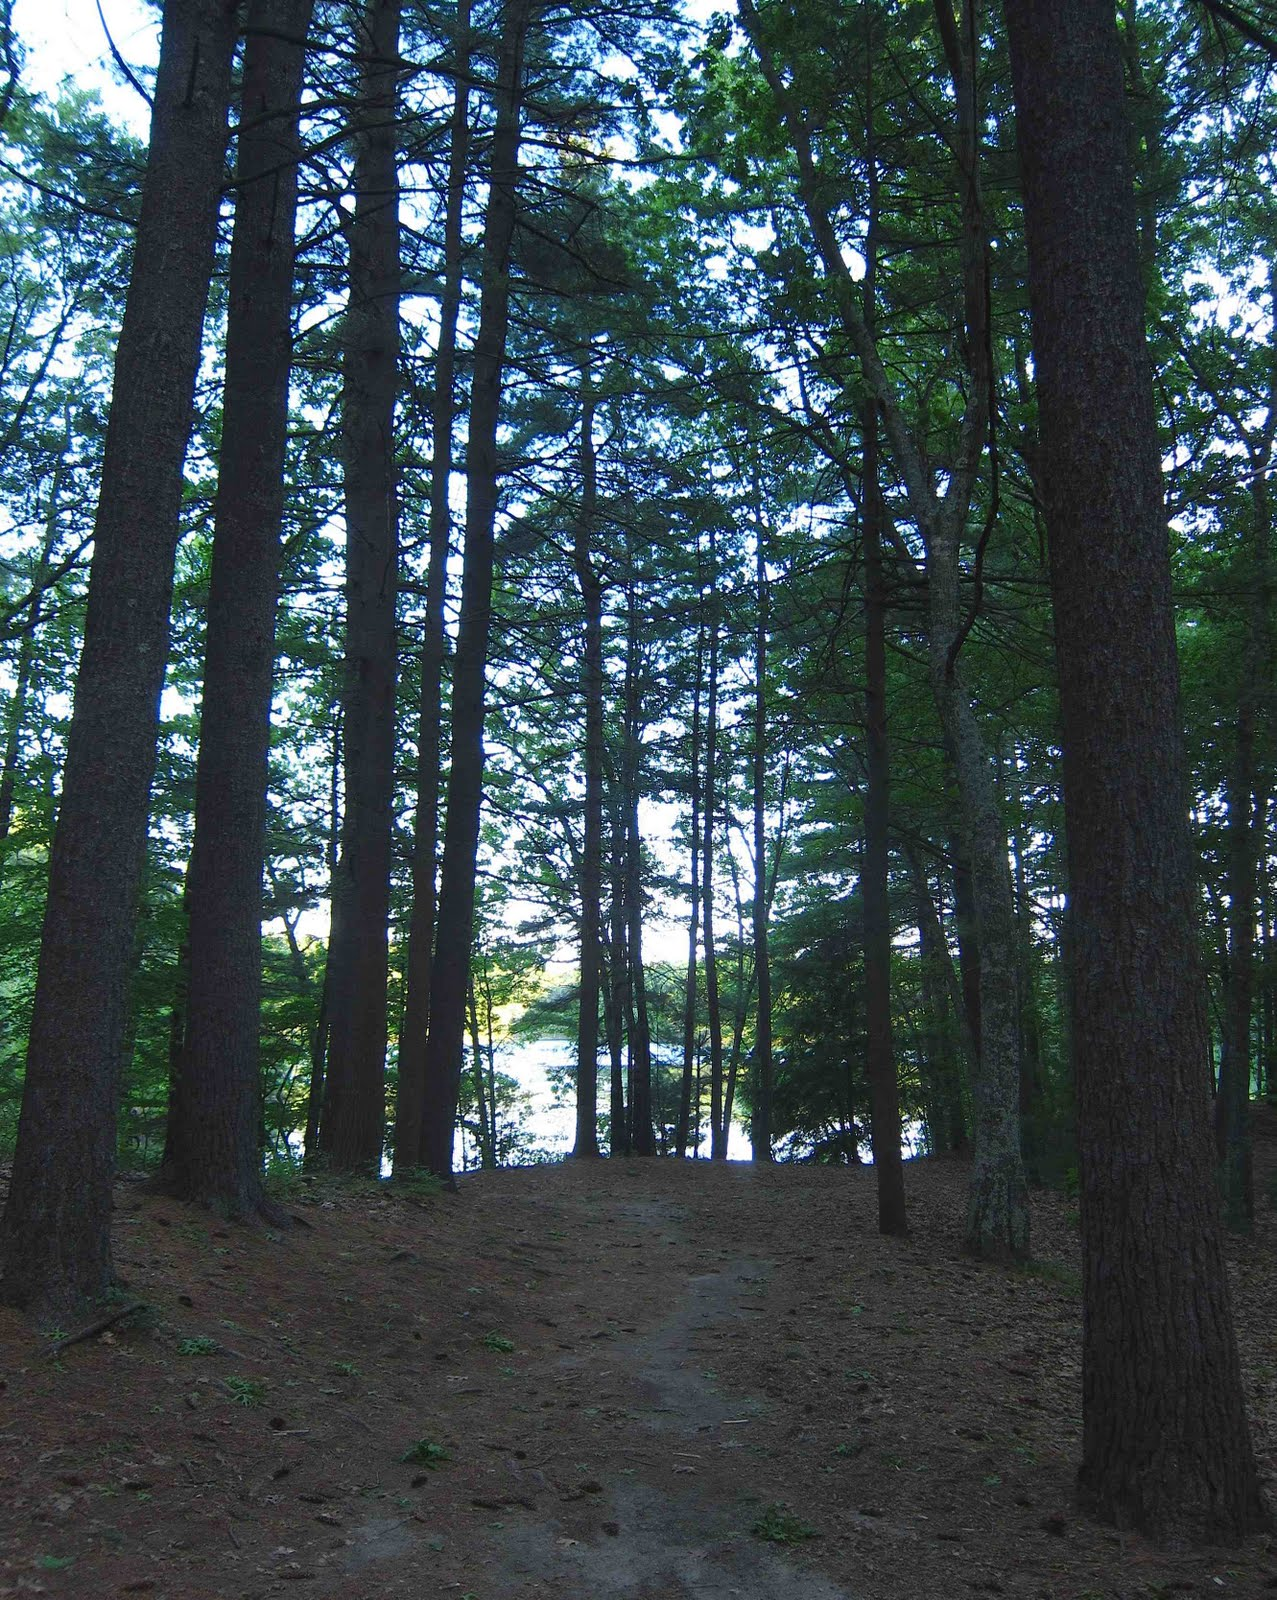 saratoga woods and waterways in thoreau s footsteps